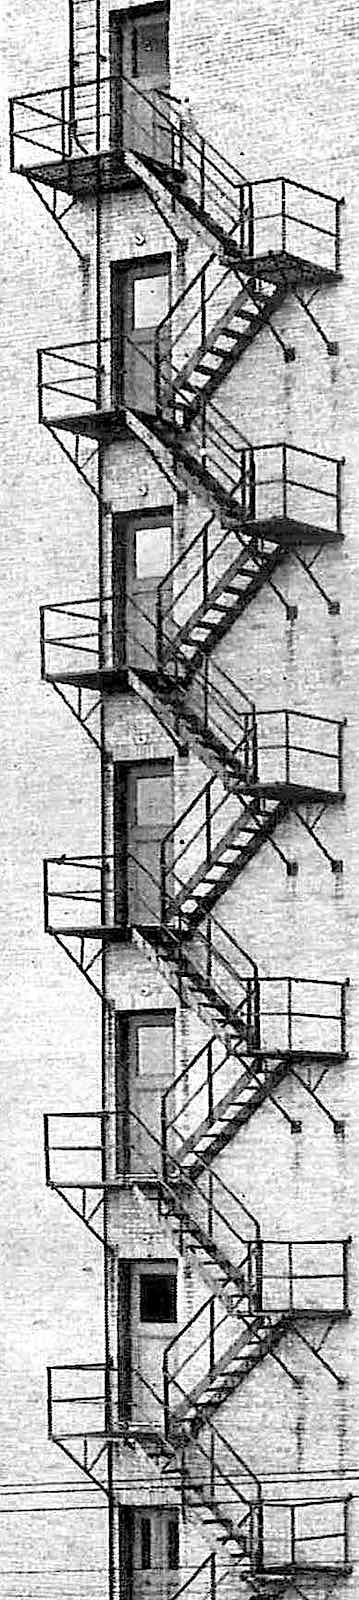 Photograph of a tall fire escape